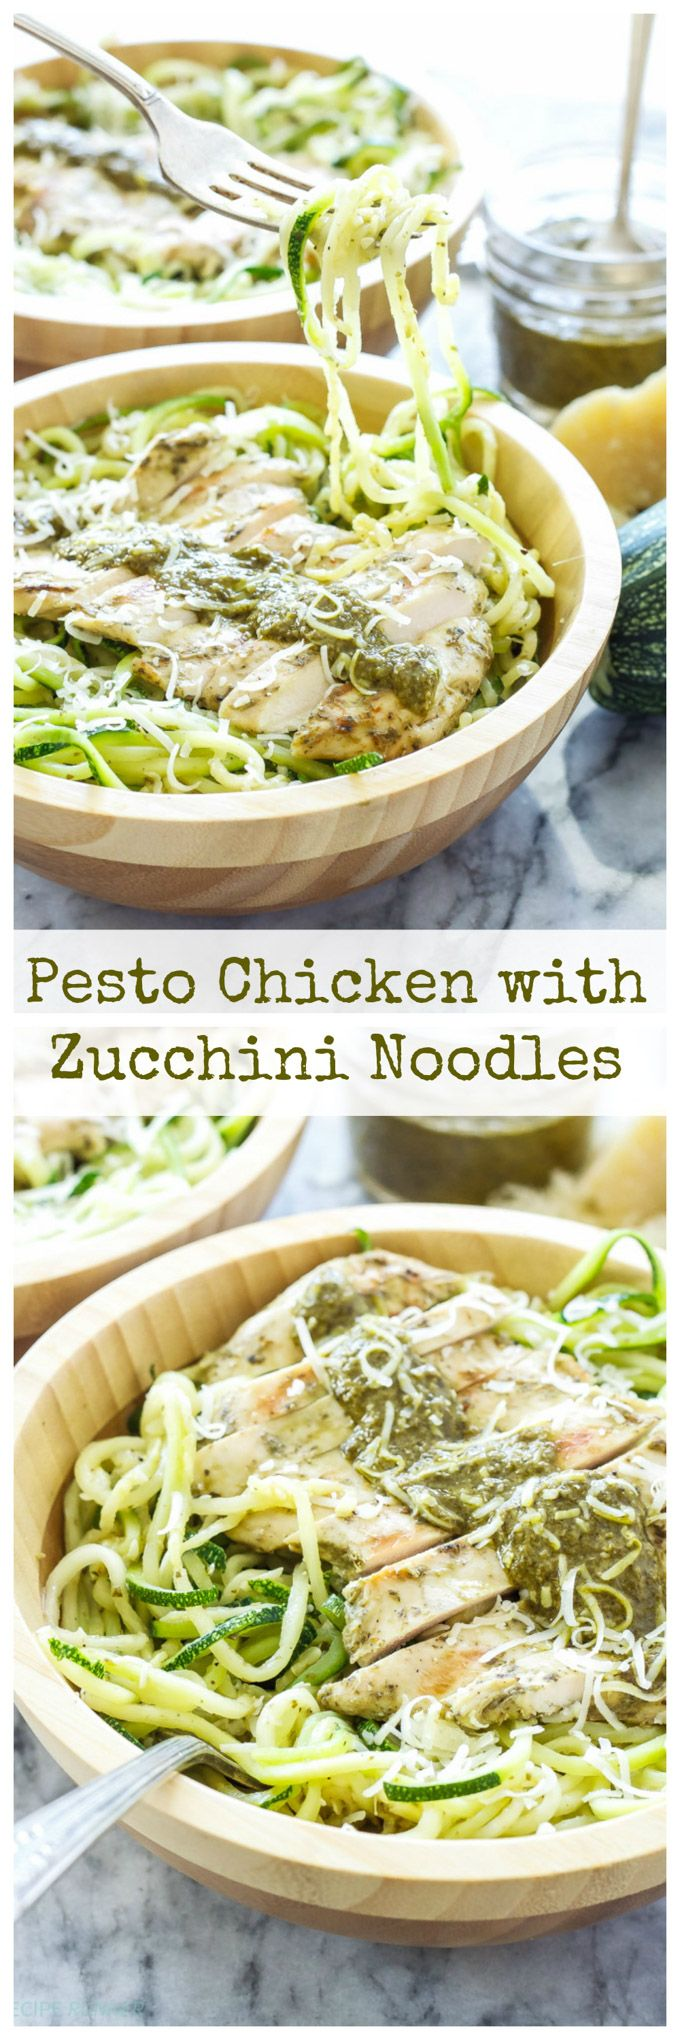 Pesto Chicken with Zucchini Noodles | Pesto chicken on top of zucchini noodles is a healthy and delicious alternative to regular pasta! #dinner